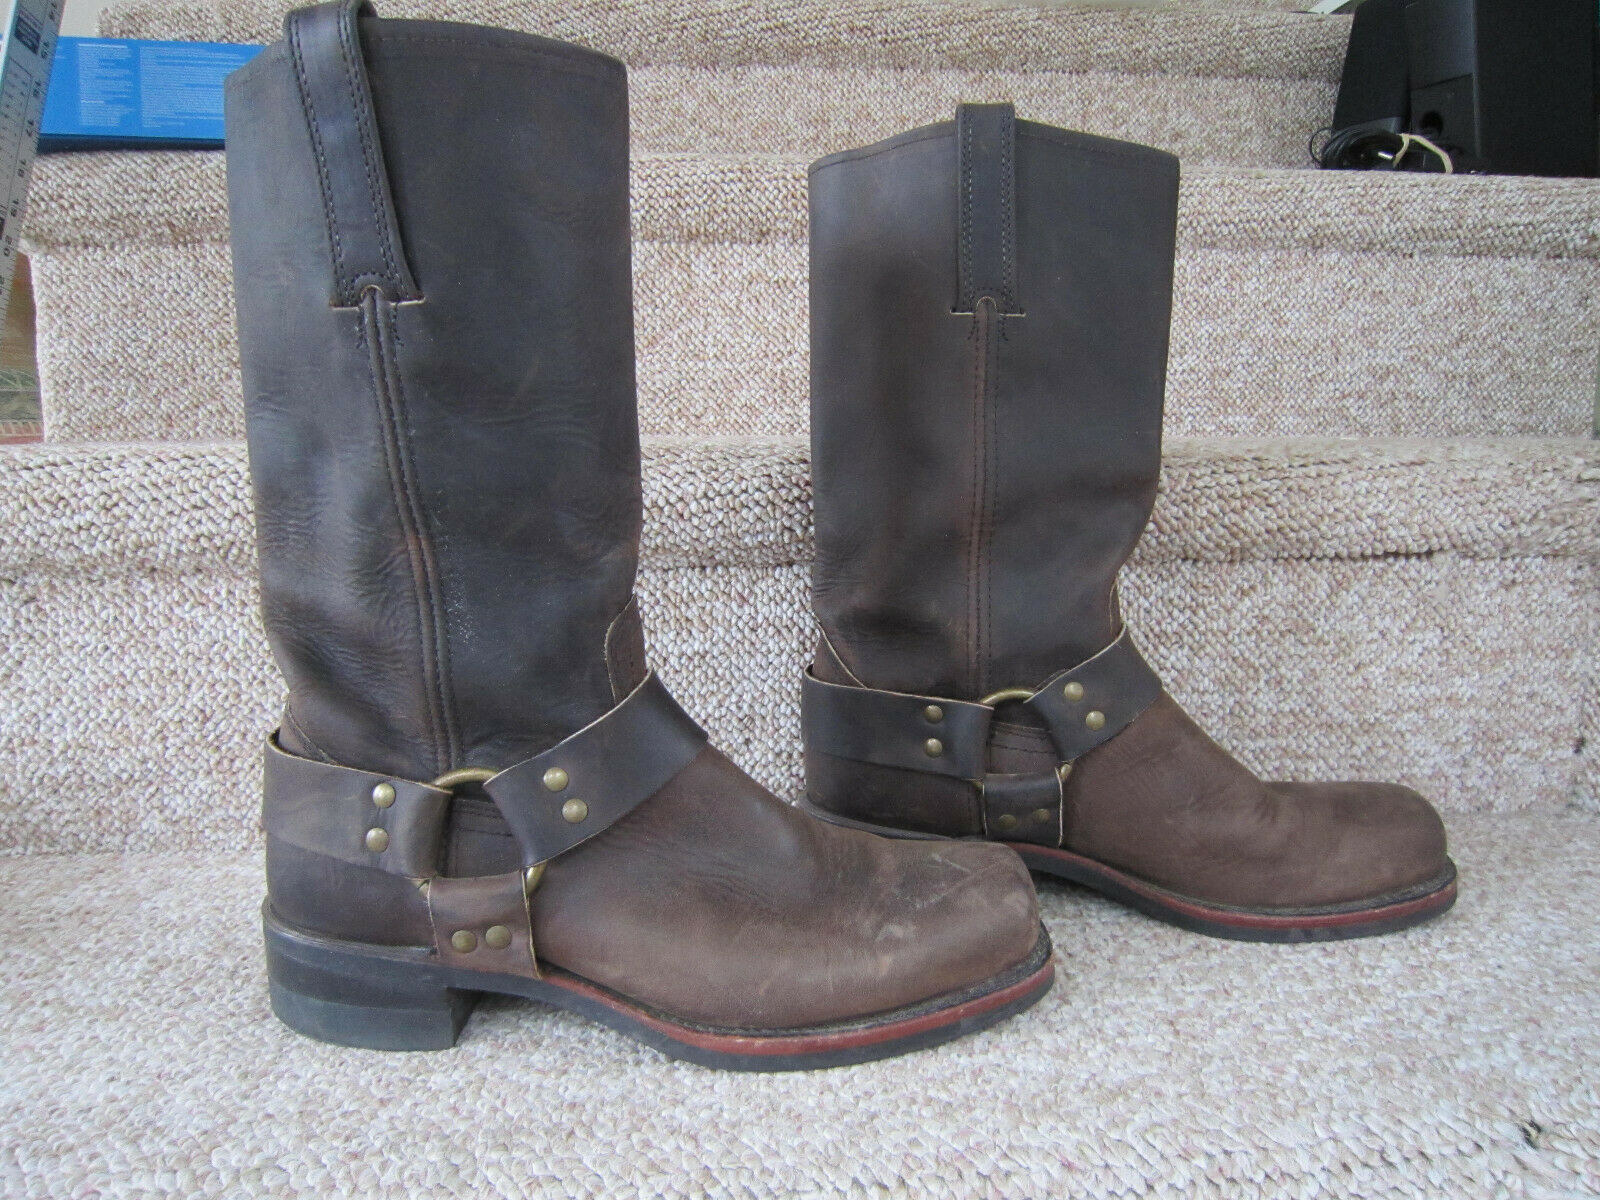 FRYE Brown Leather Boots Harness Biker Riding 87350 Motorcycle Cowboy 8.5M USA